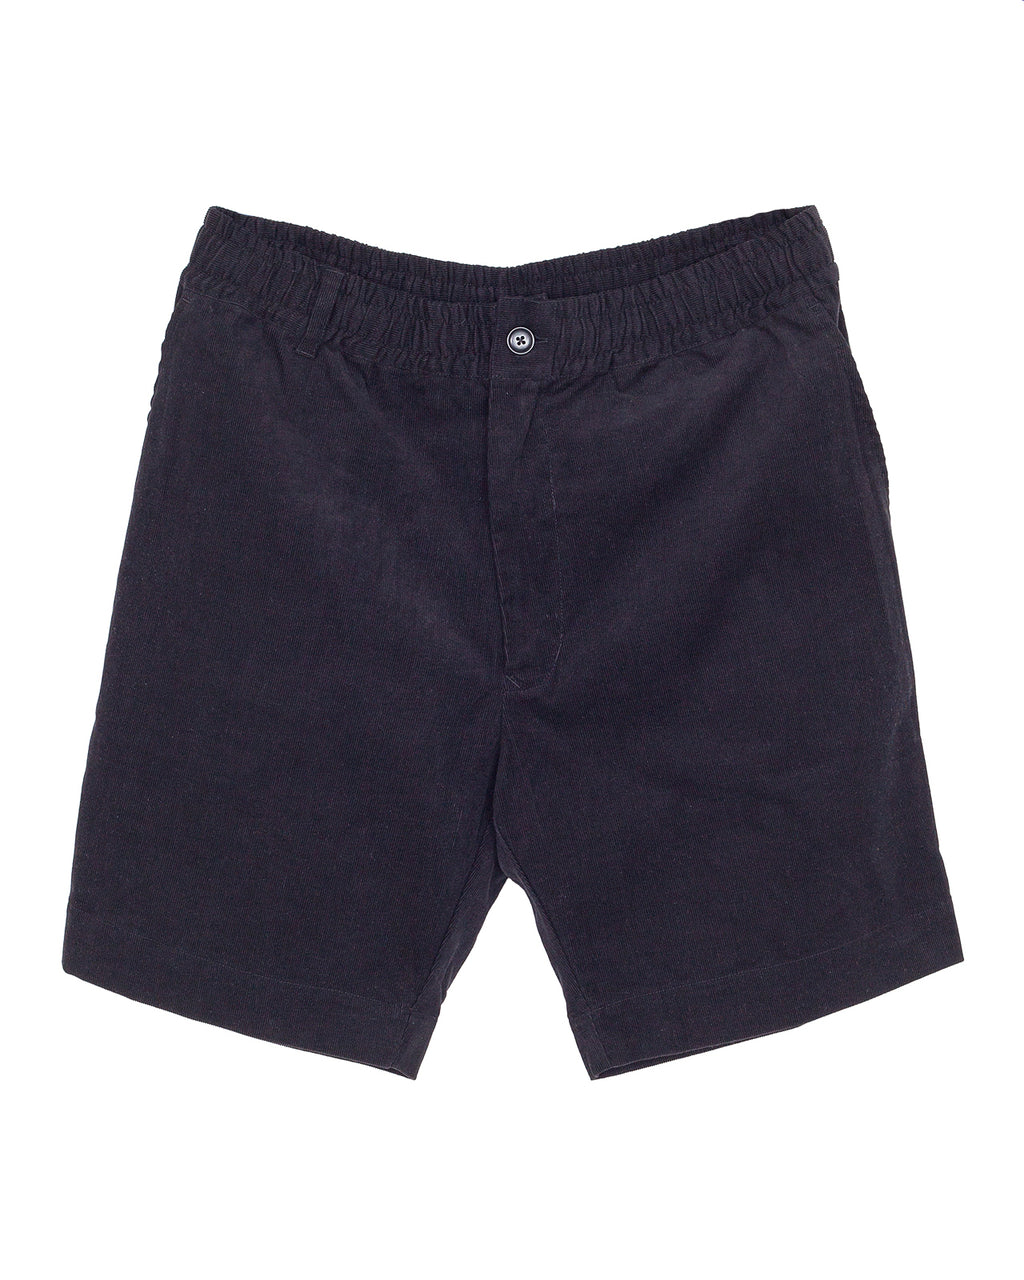 By Glad Hand, Gladden Shorts, Black